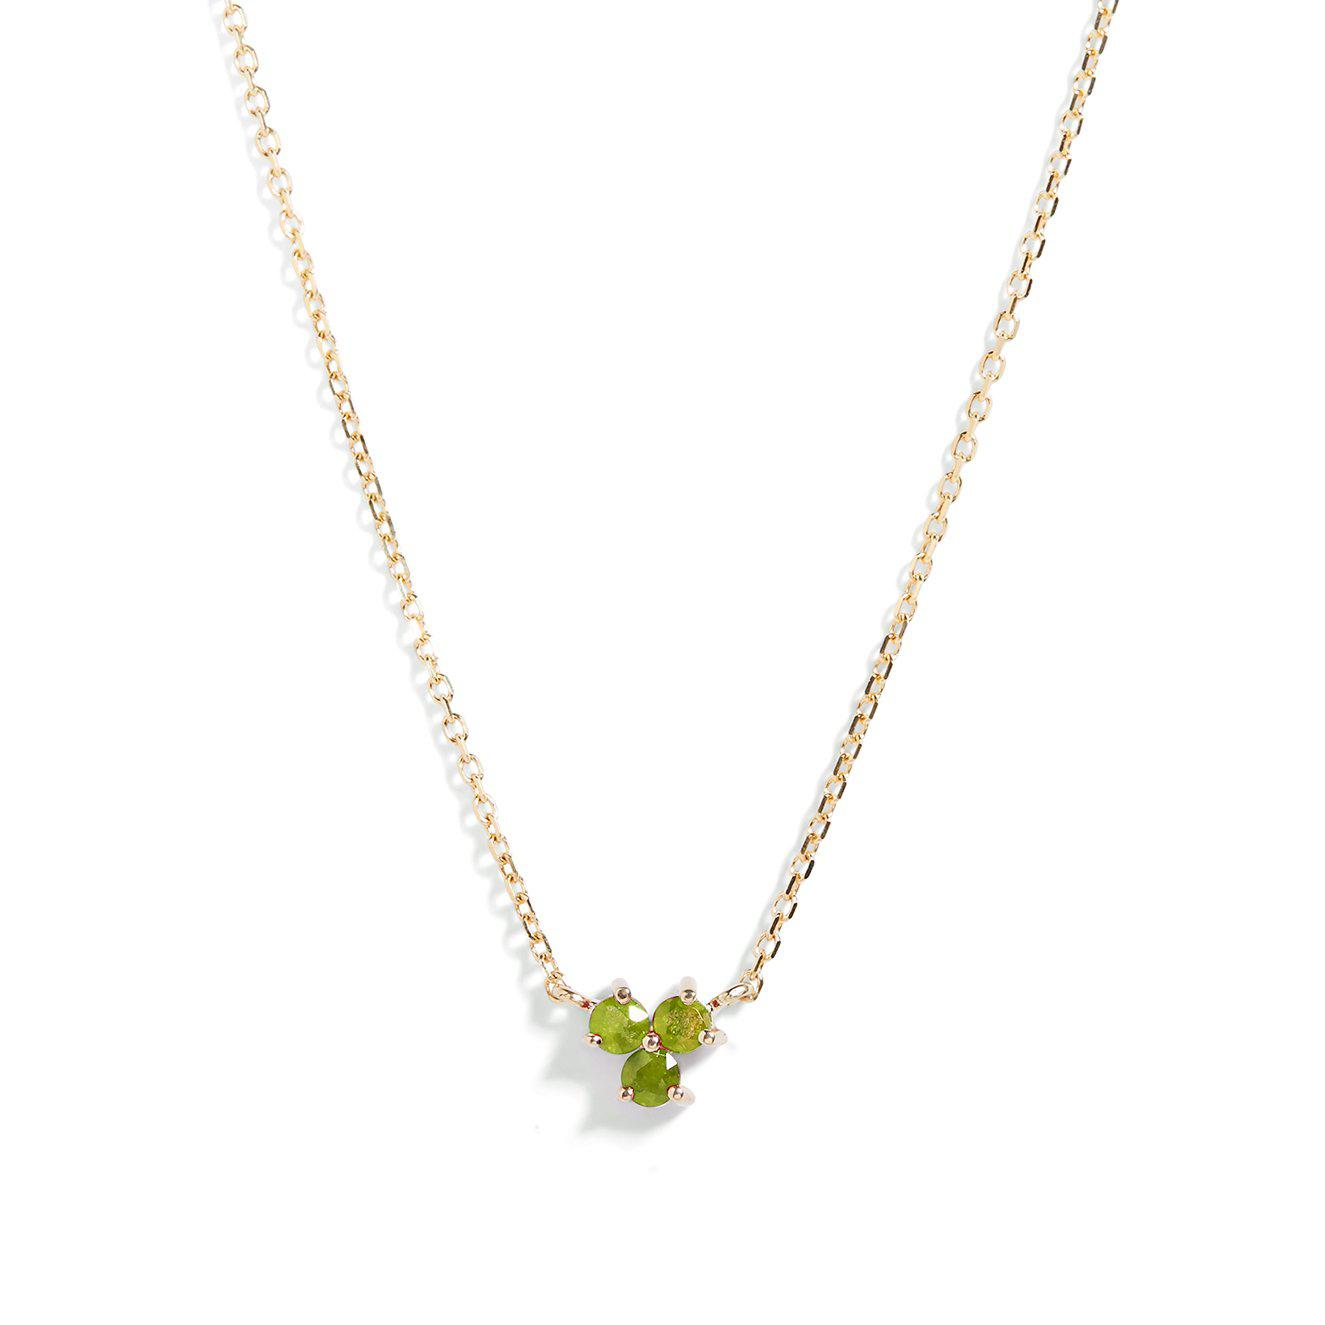 The Trio Peridot Necklace in 9kt Gold